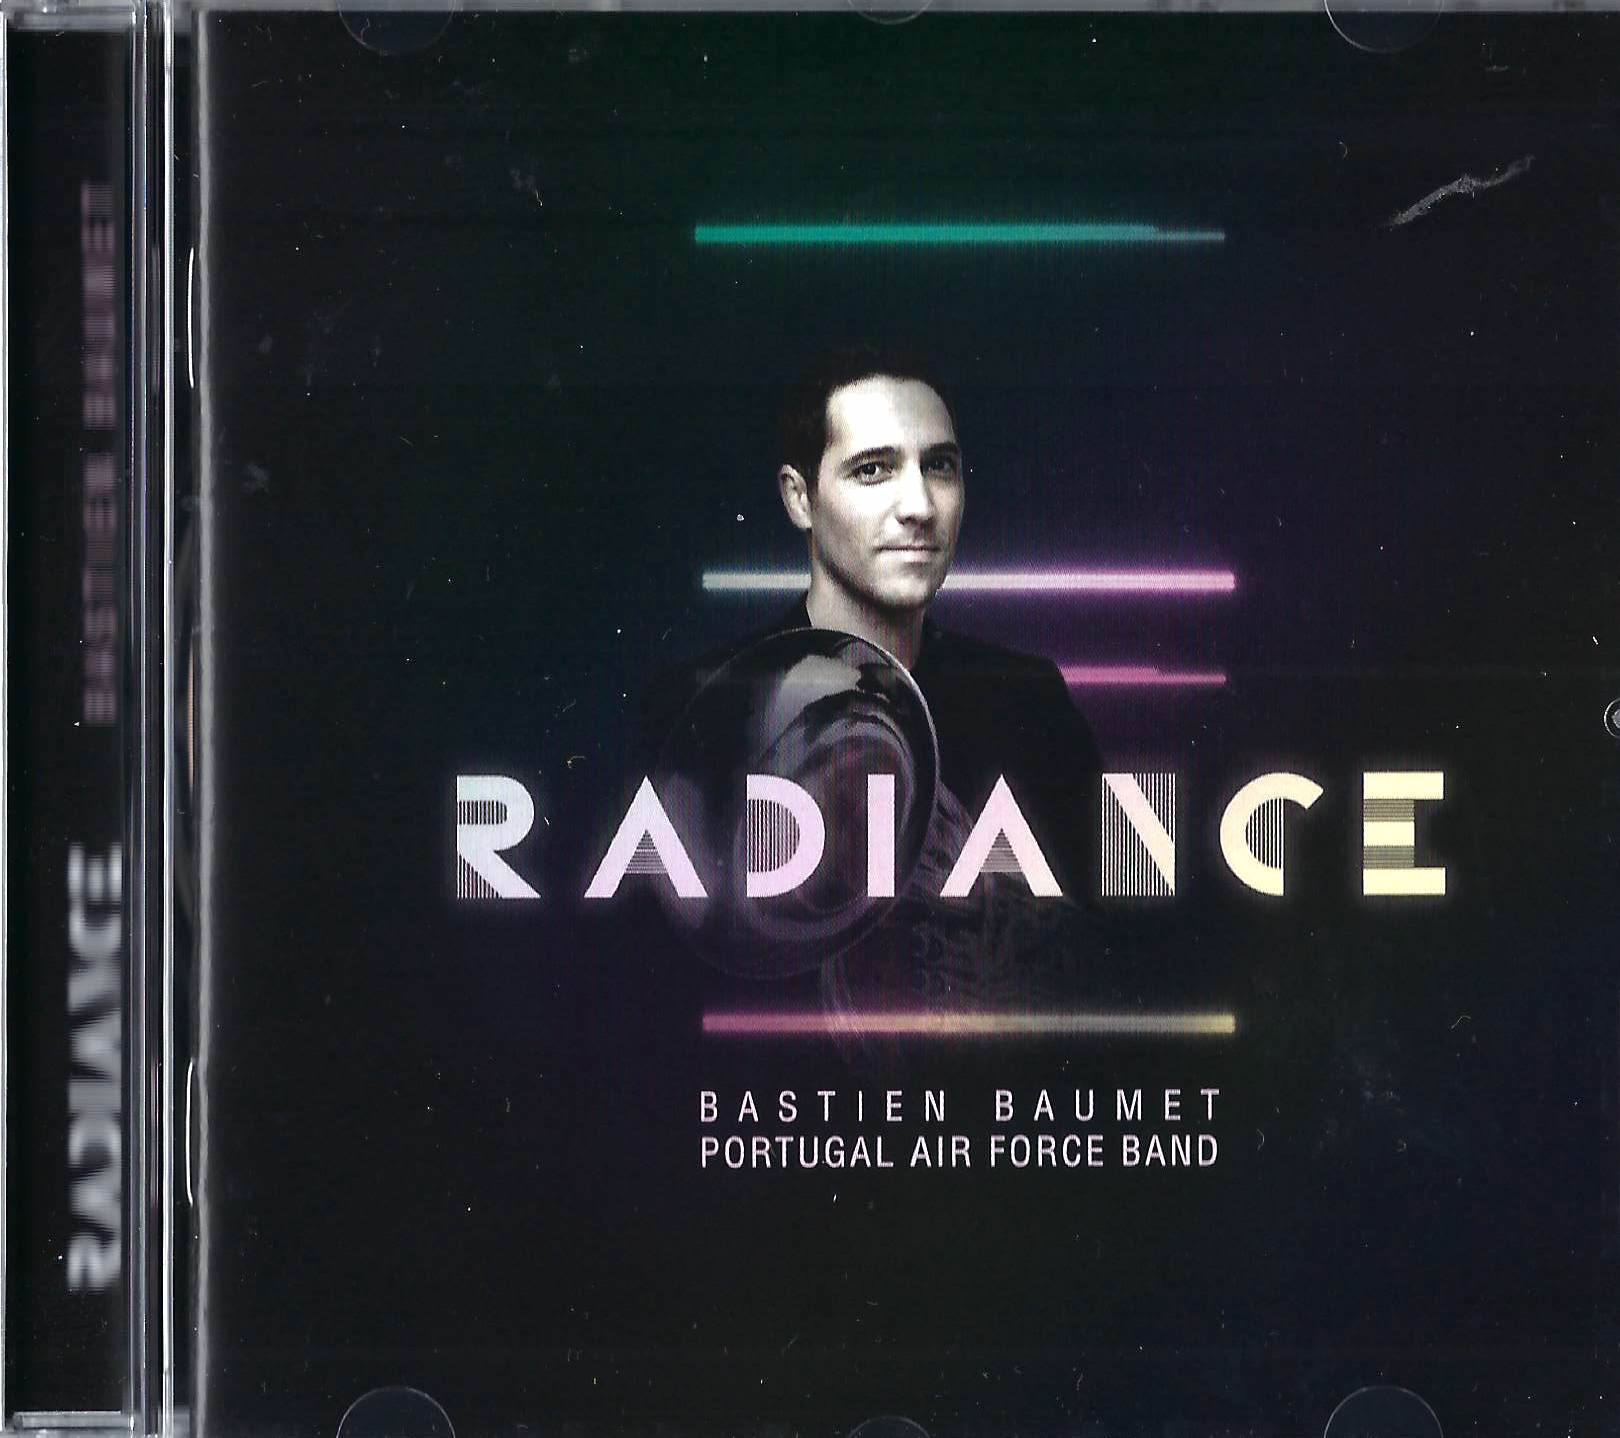 CD - Radiance - Bastien Baumet - Portugal Air Force Band